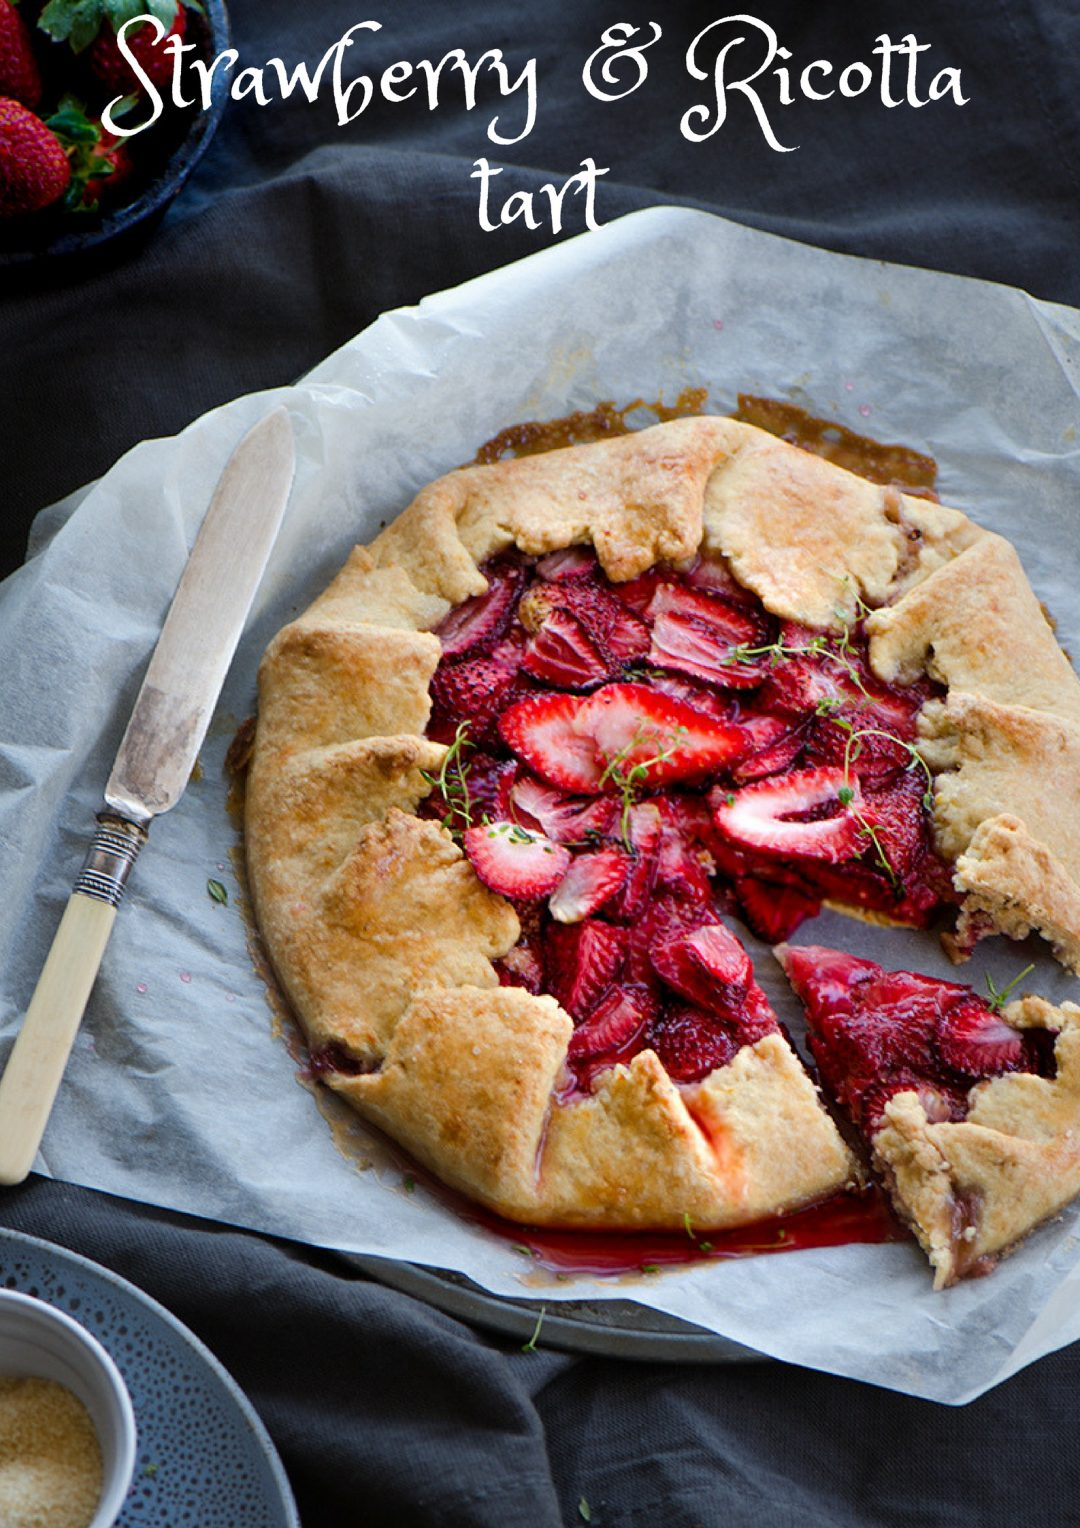 Strawberry and Ricotta tart